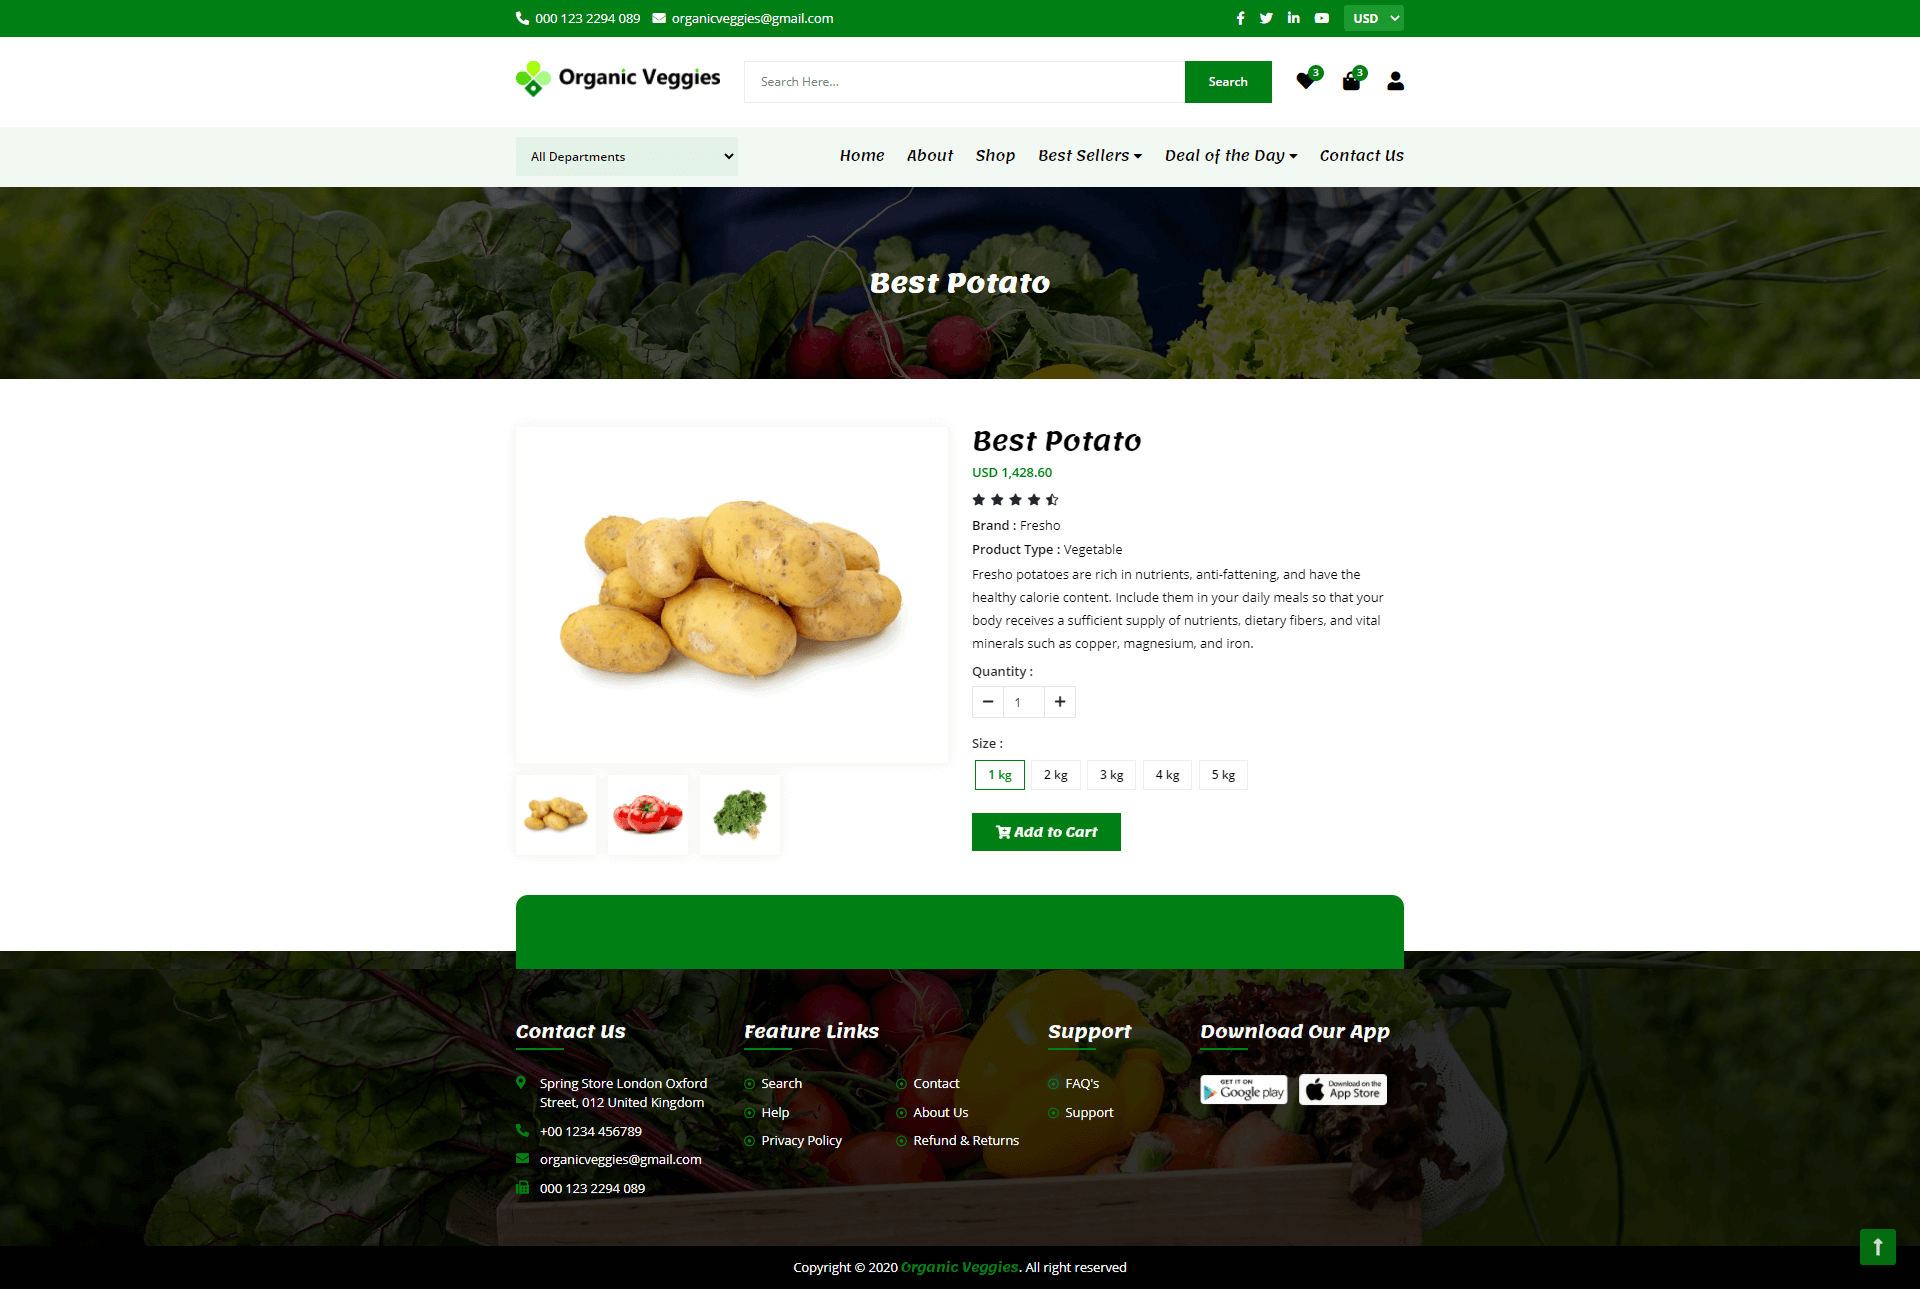 Grocery Store Web Screenshot Second Image